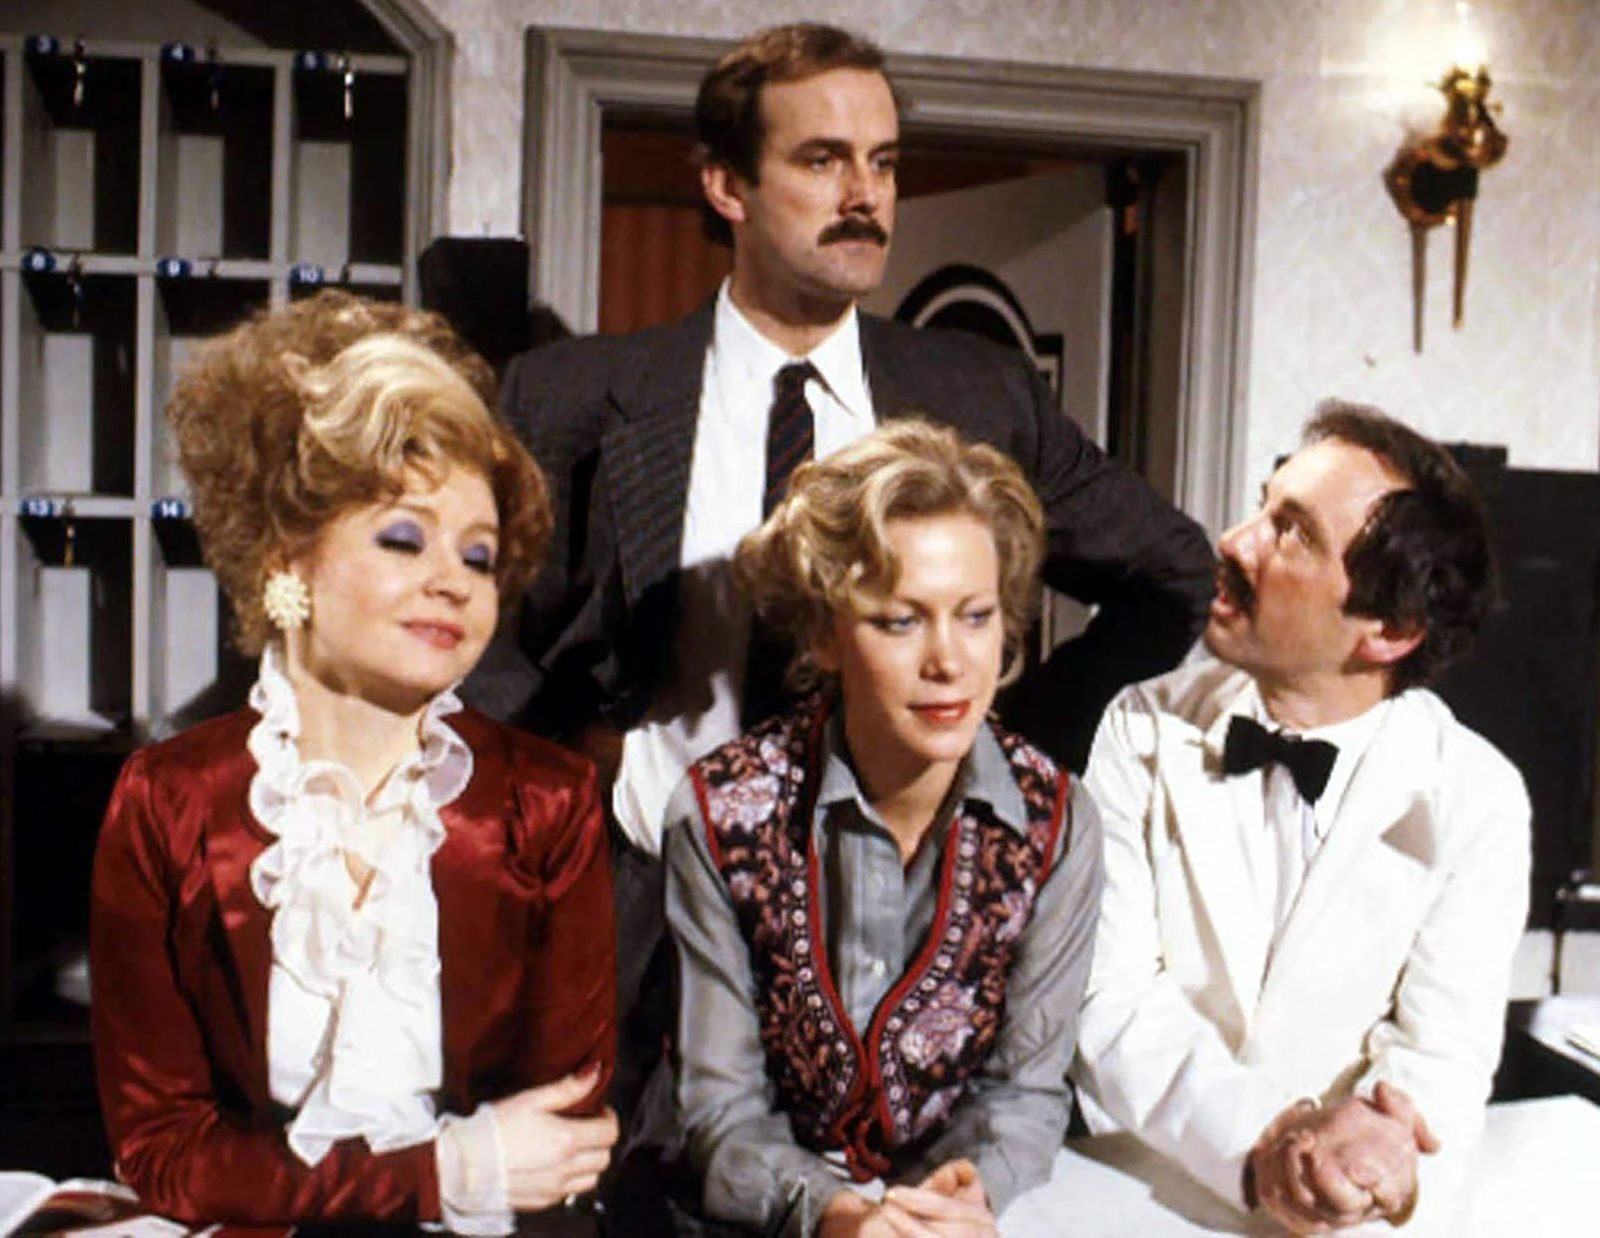 BRITAIN BBC ANNIVERSARY FAWLTY TOWERS